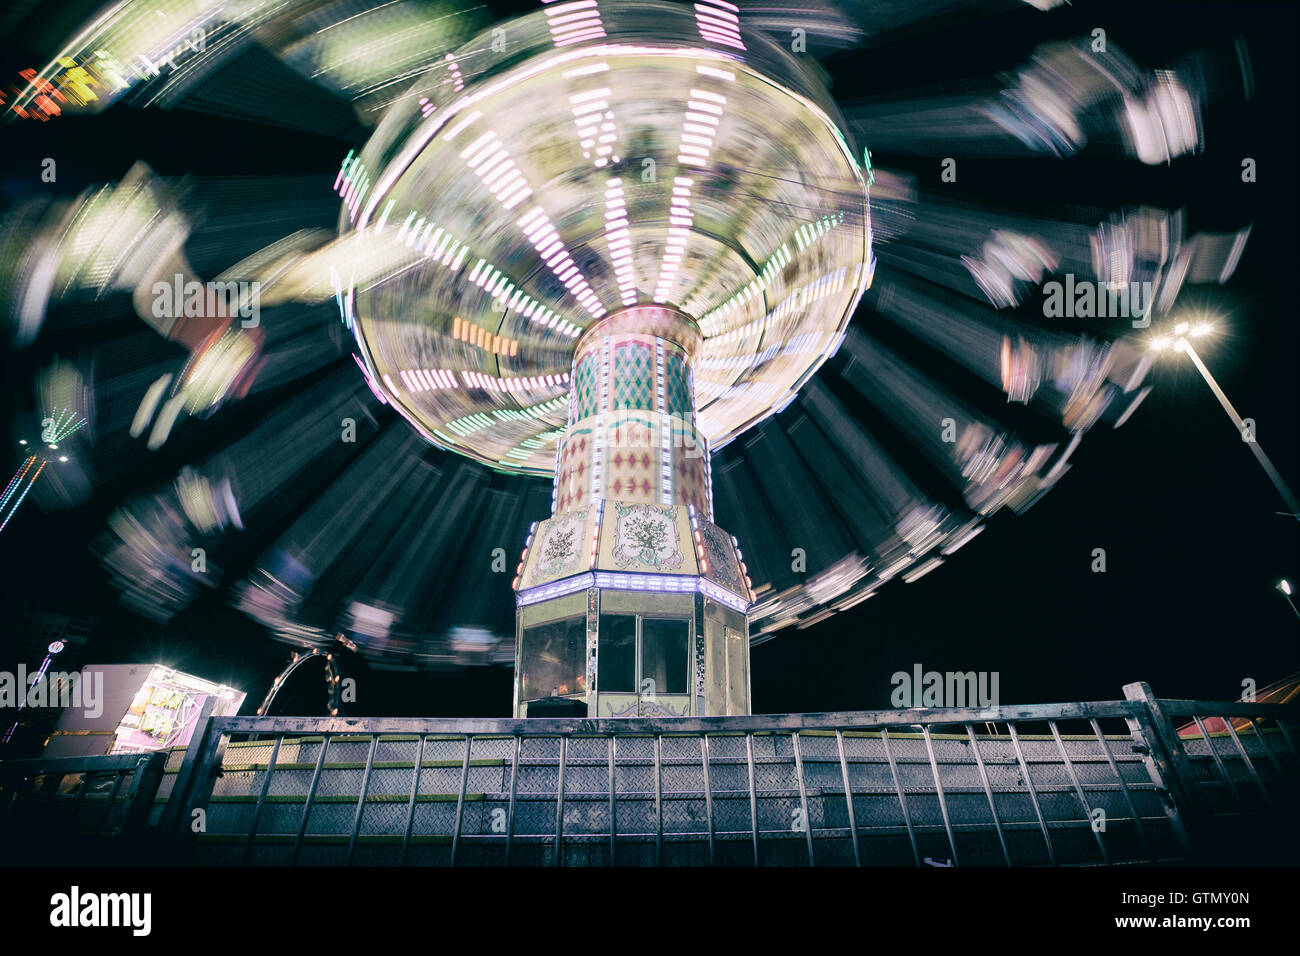 swing ride at carnival fair with blur motion effect - Stock Image